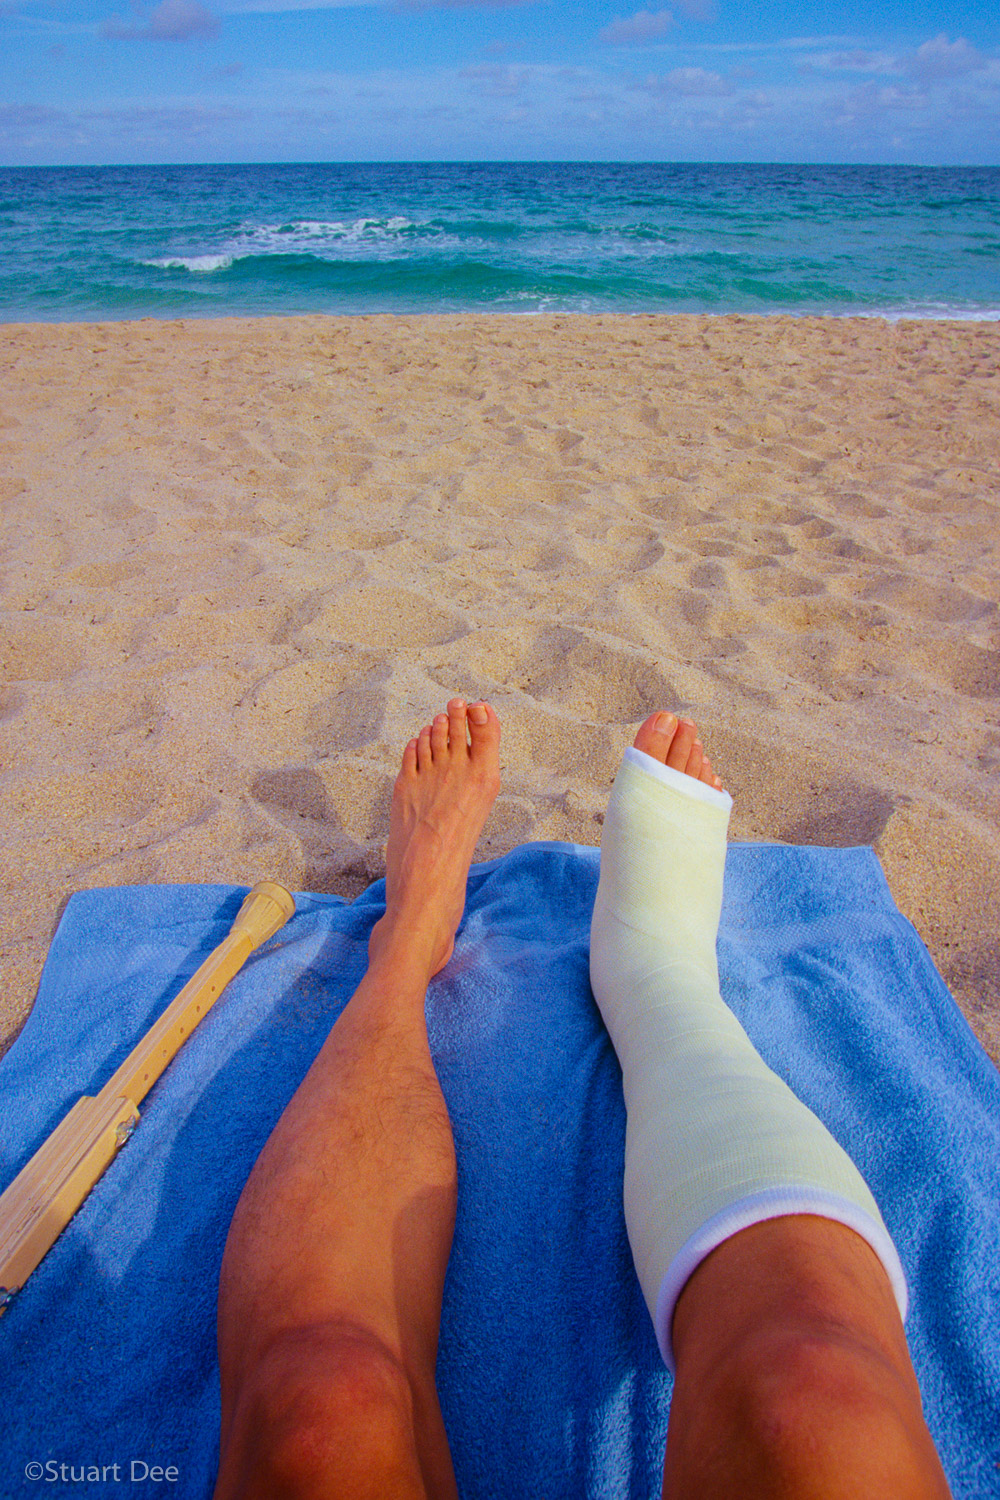 Man's legs and crutch on beach towel, Miami Beach, Florida, USA